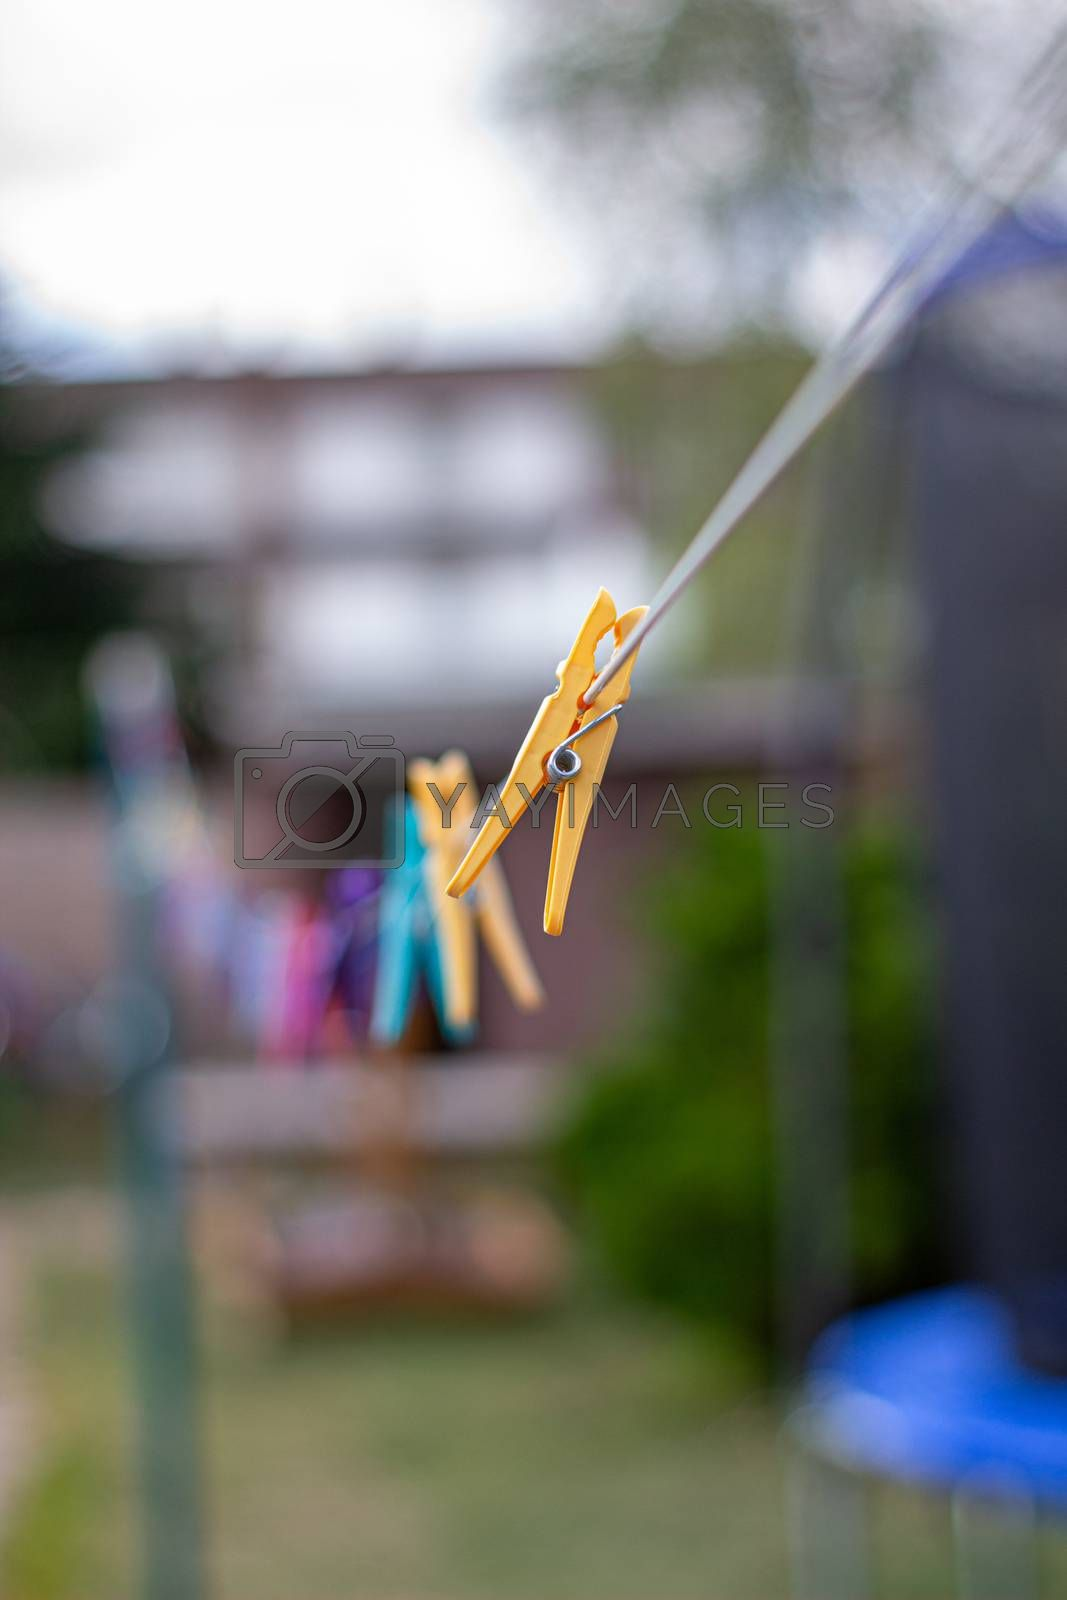 Colorful plastic clothespins on the hangers, clothespins on the hangers rope for wash clothes.